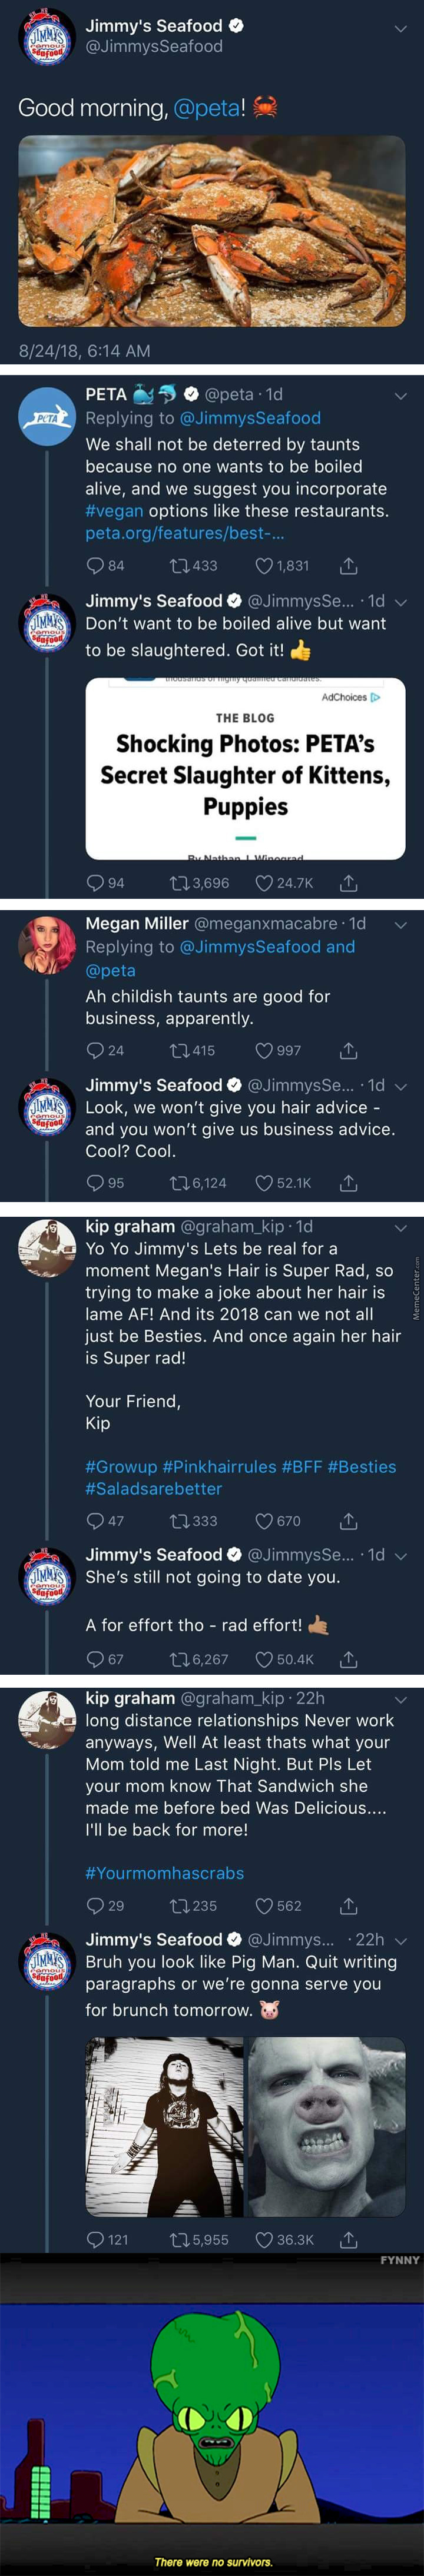 Jimmy's Seafood Is Wendy's Competition